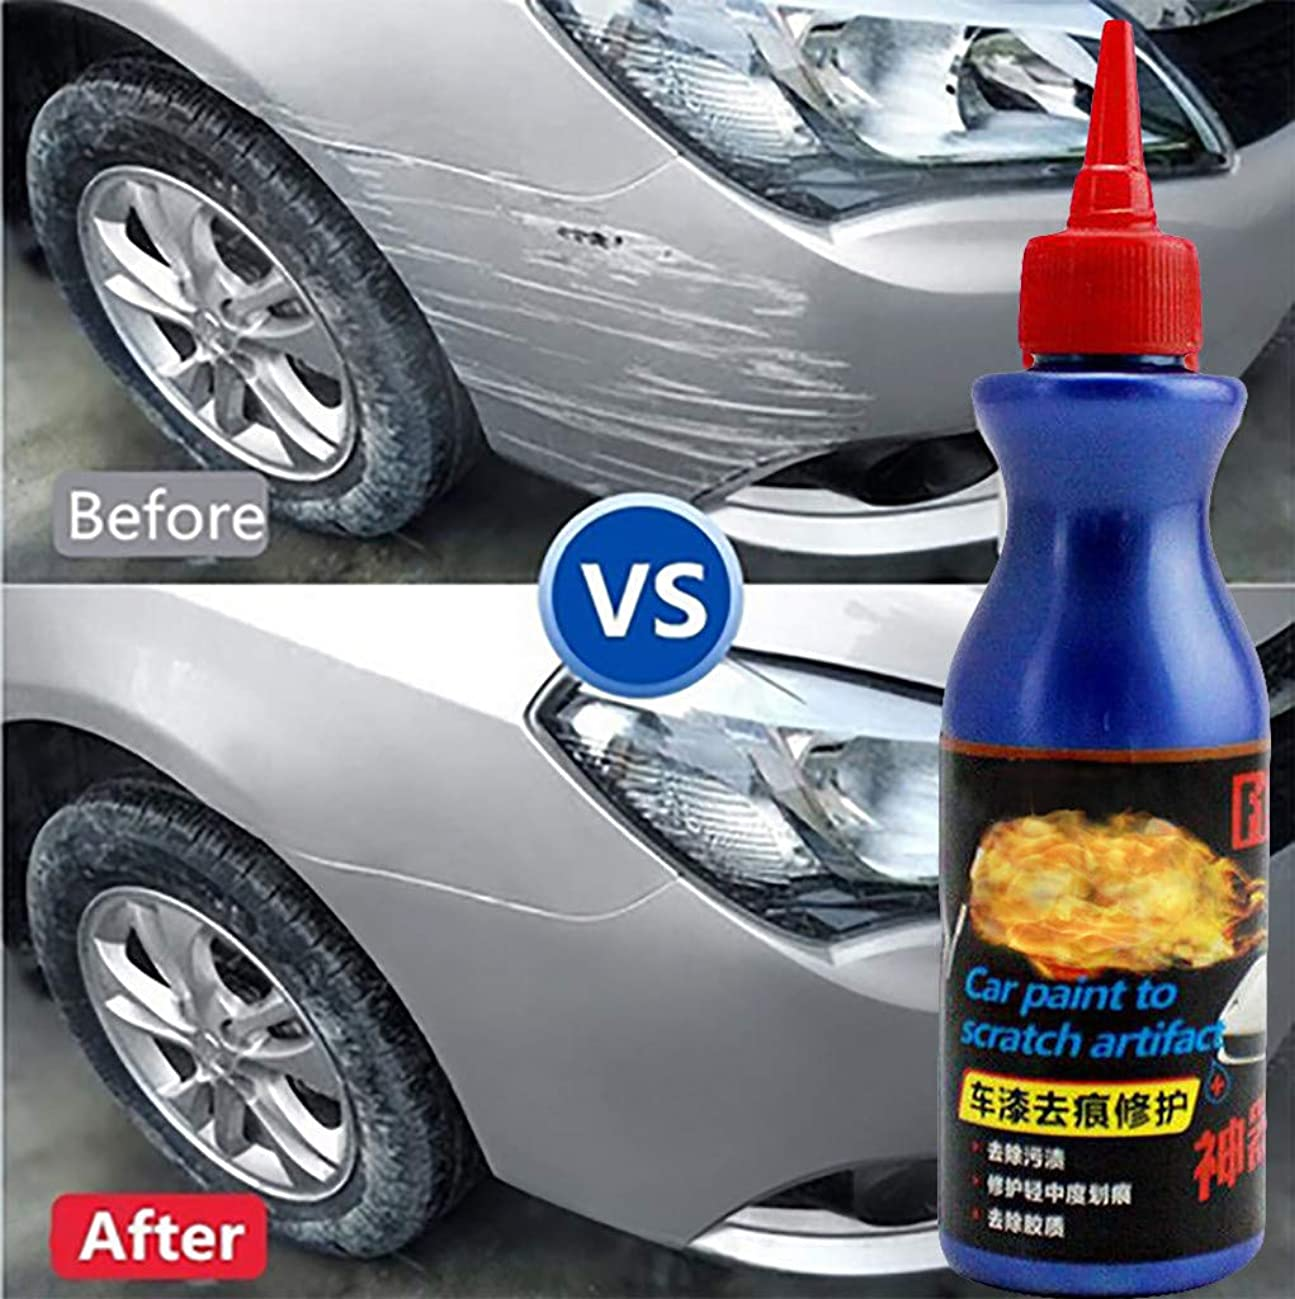 One Glide Scratch Remover, Polishing Paint Restorer Easily Repair Paint Scratches Repair Remover Paint Care Car Scratch Repair Fluid Polishing Wax (Blue, One Size)